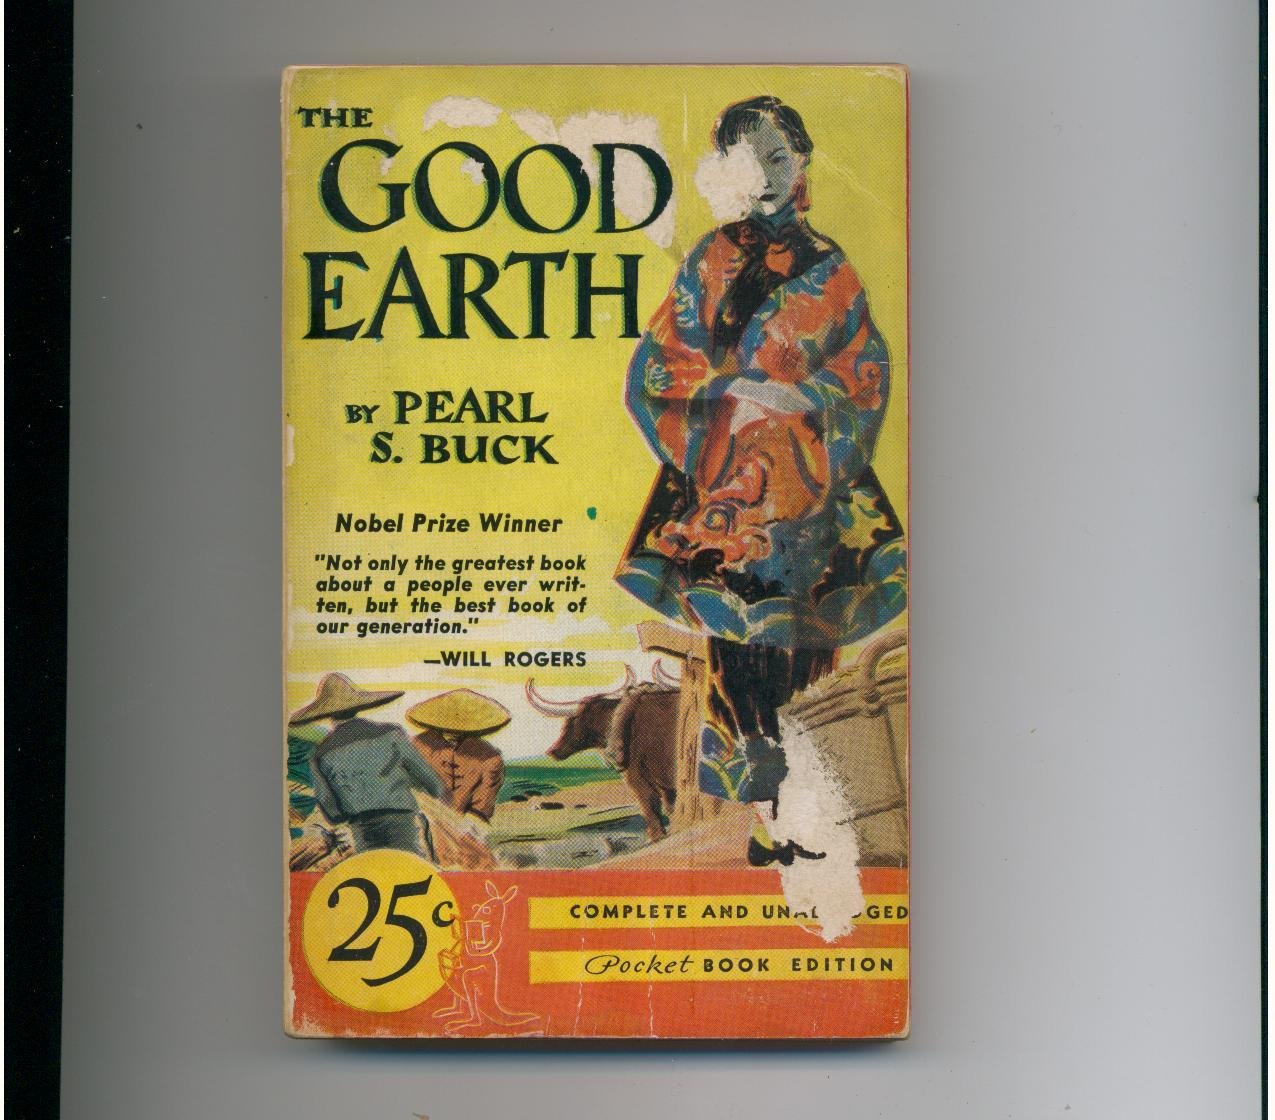 Buck - THE GOOD EARTH - 1939 - 1st pr. of Pocket #11